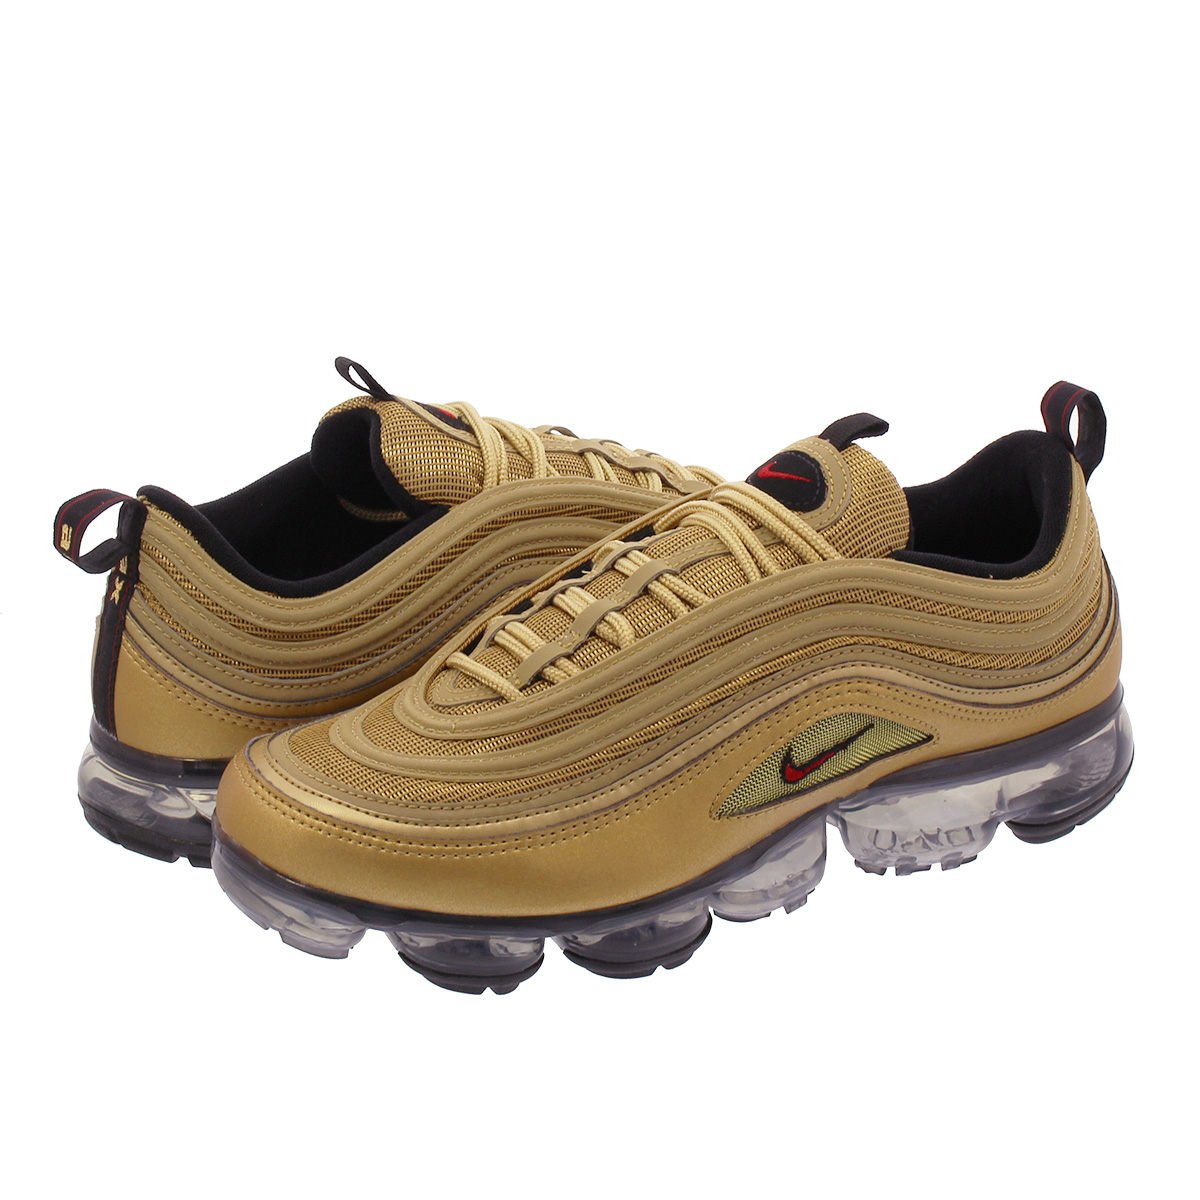 best service ebc95 47cb2 NIKE AIR VAPORMAX 97 Nike air vapor max 97 METALLIC GOLD/VARSITY  RED/BLACK/WHITE aj7291-700